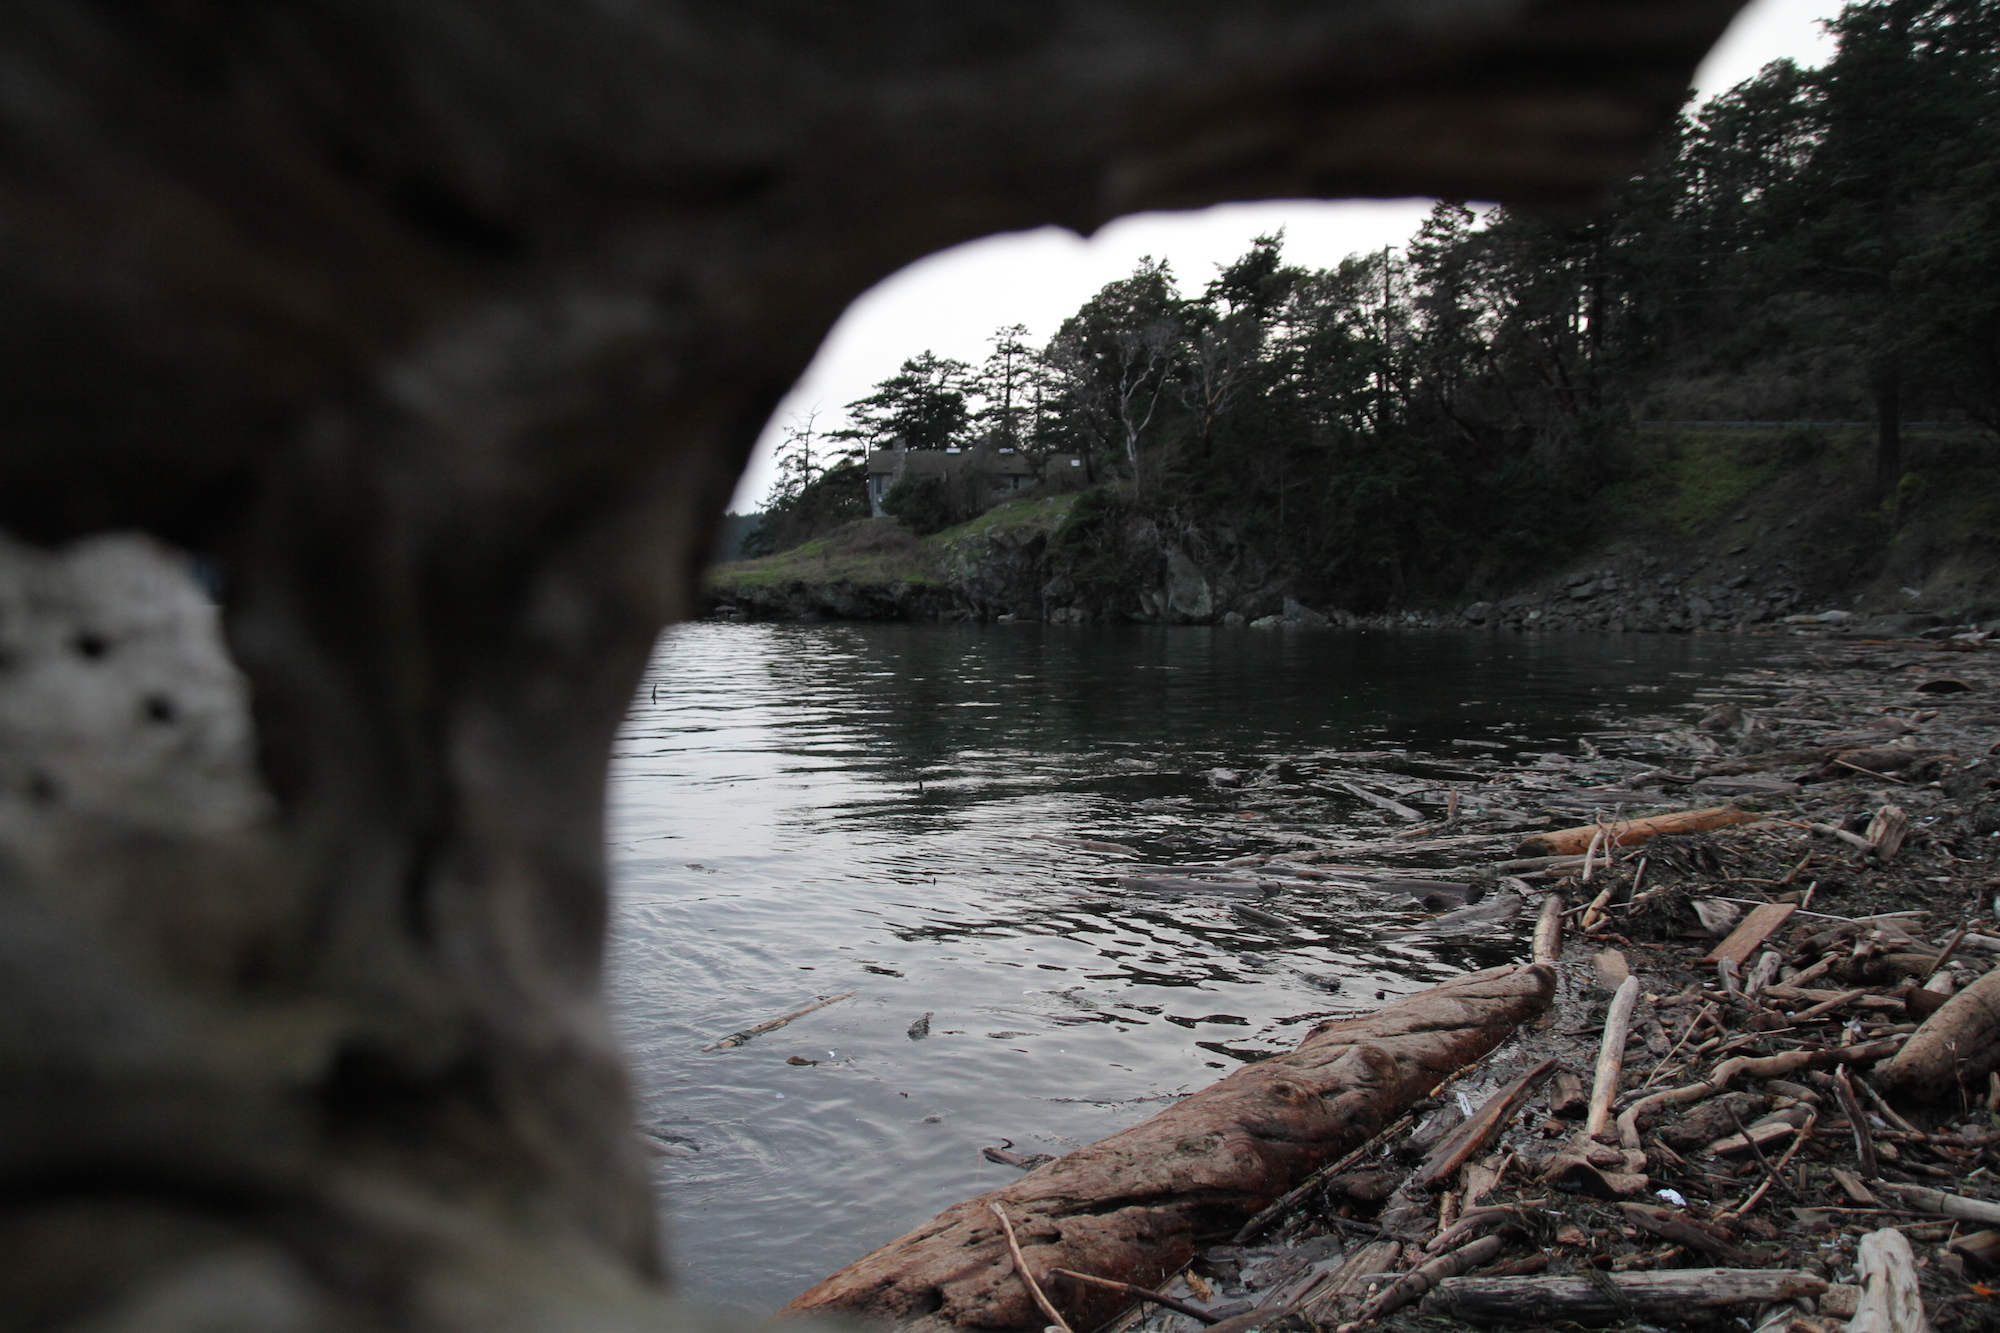 One Last Look Through the Driftwood. Photo by Gray G.